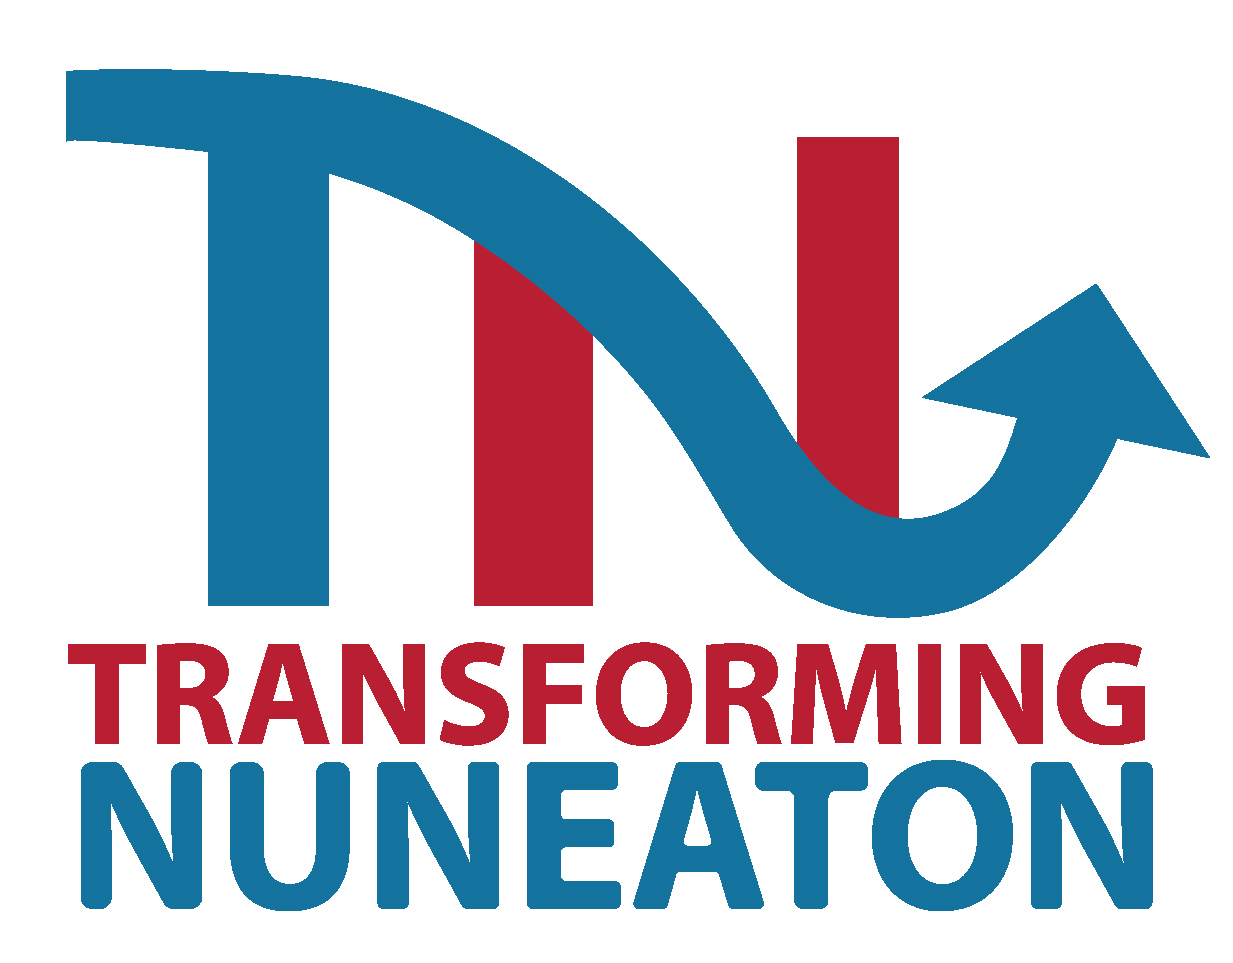 Transforming nuneaton logo